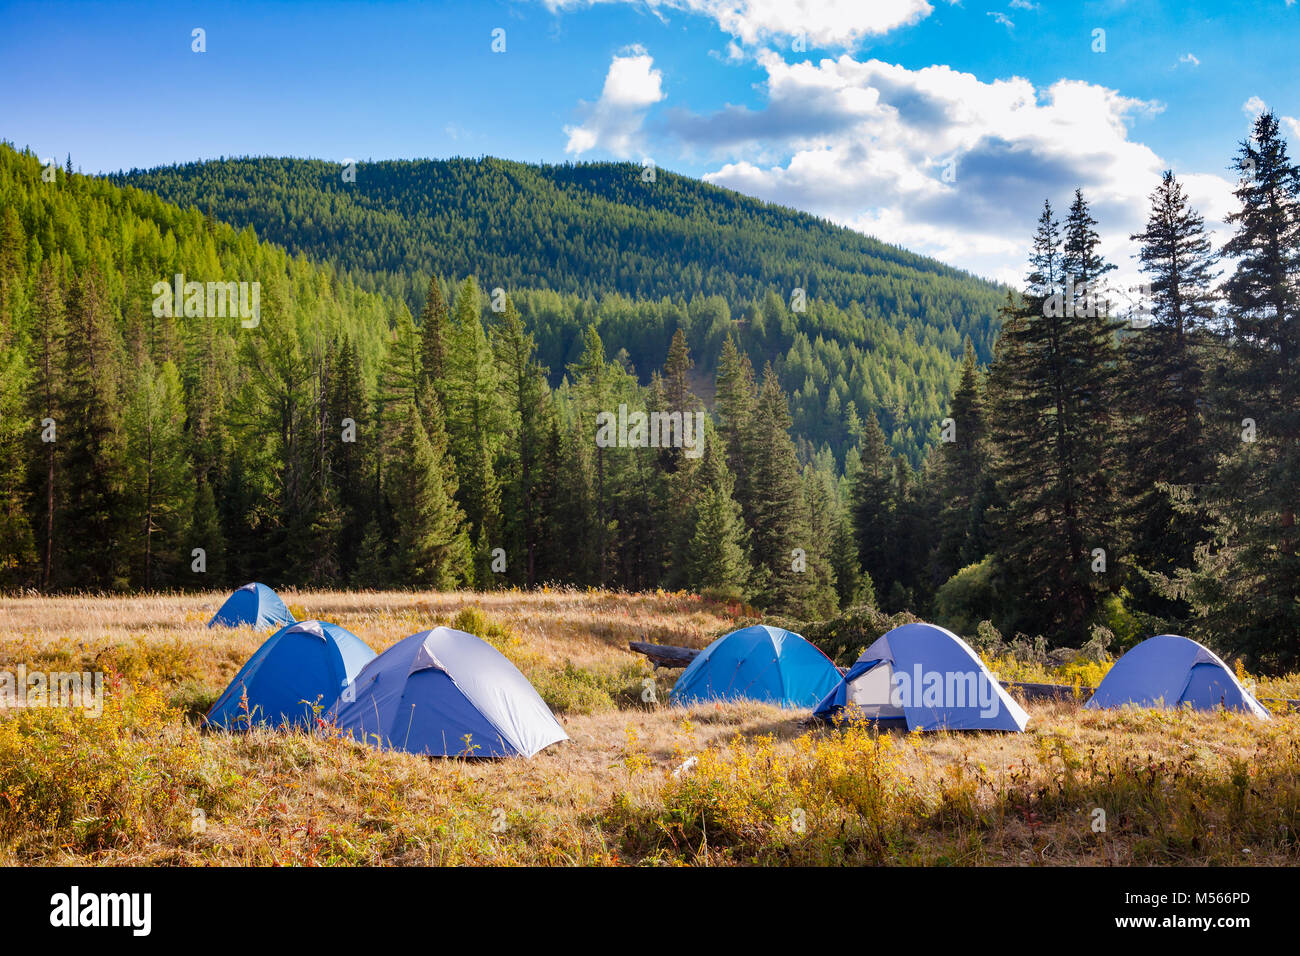 Camping tents on a river shore in wild camping, Altai Mountains, Western Mongolia Stock Photo